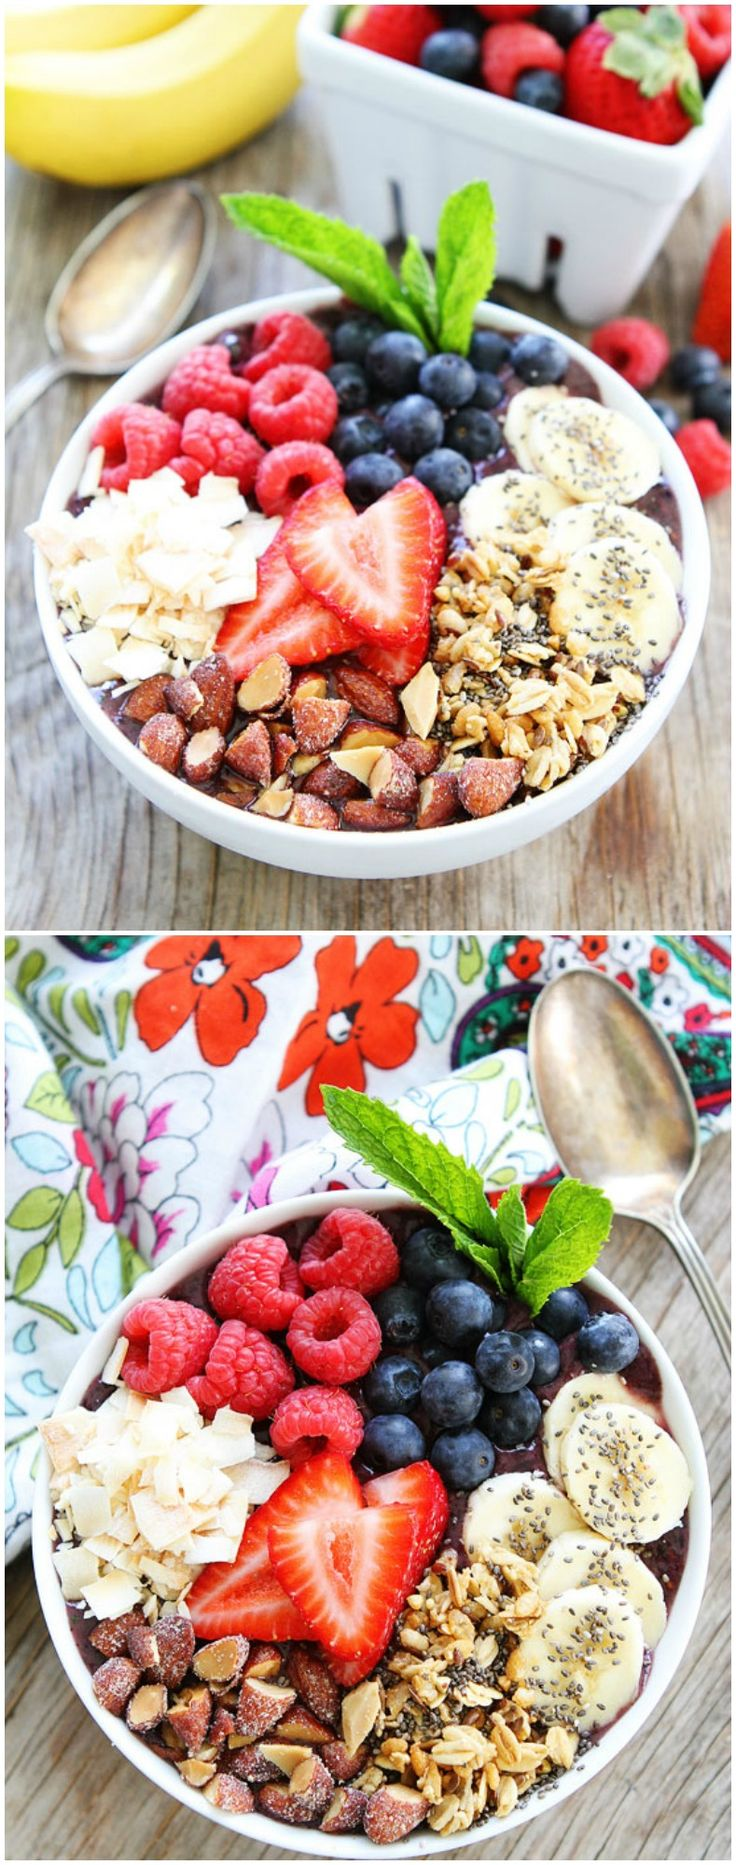 Berry Banana Smoothie Bowl Recipe on twopeasandtheirpod.com This easy and healthy smoothie bowl is great for breakfast, snack time, or dessert!